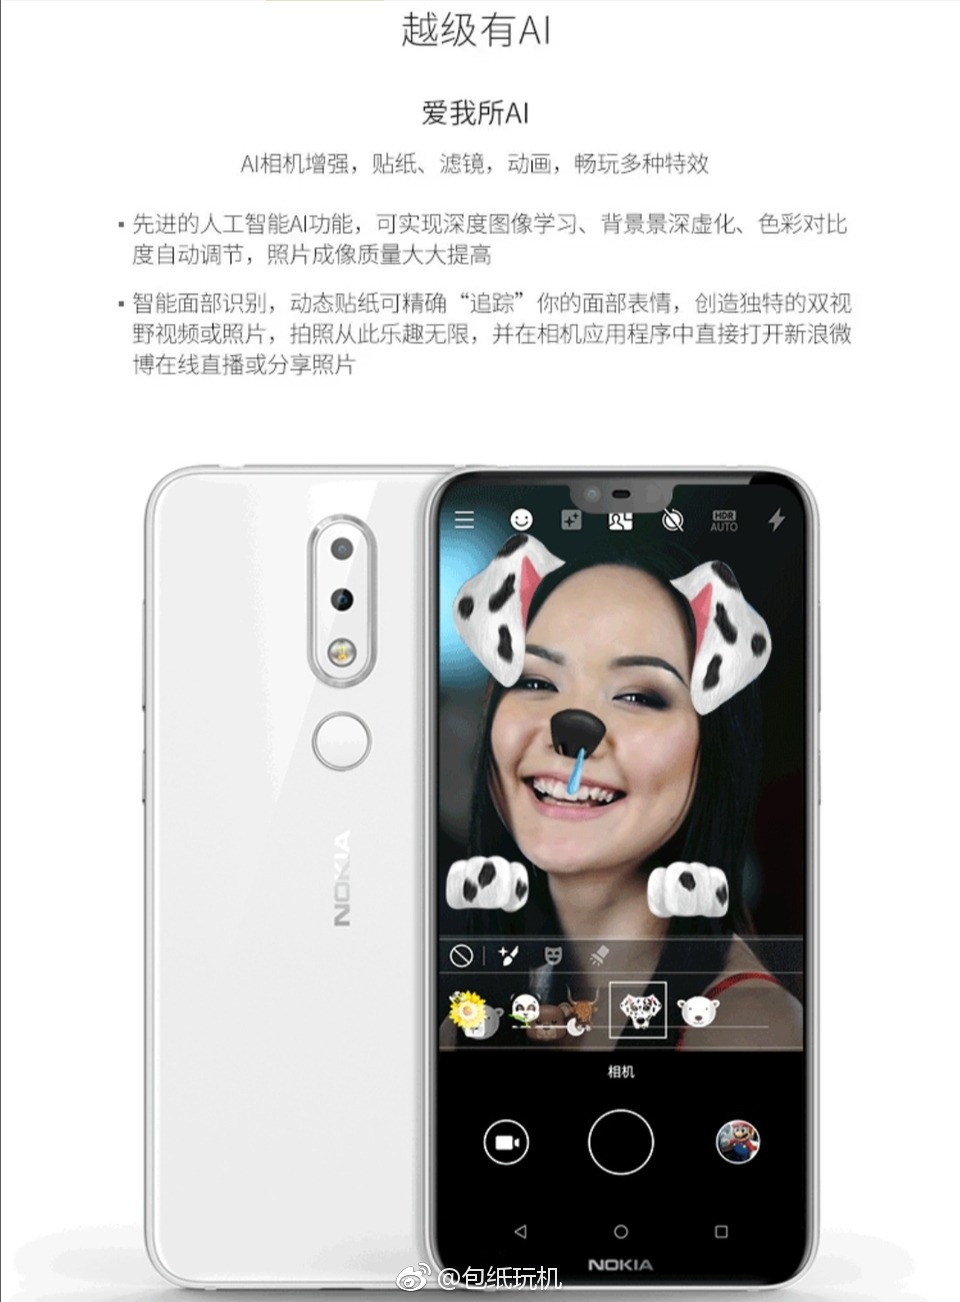 Well, AI Stickers are also present on the Nokia X6